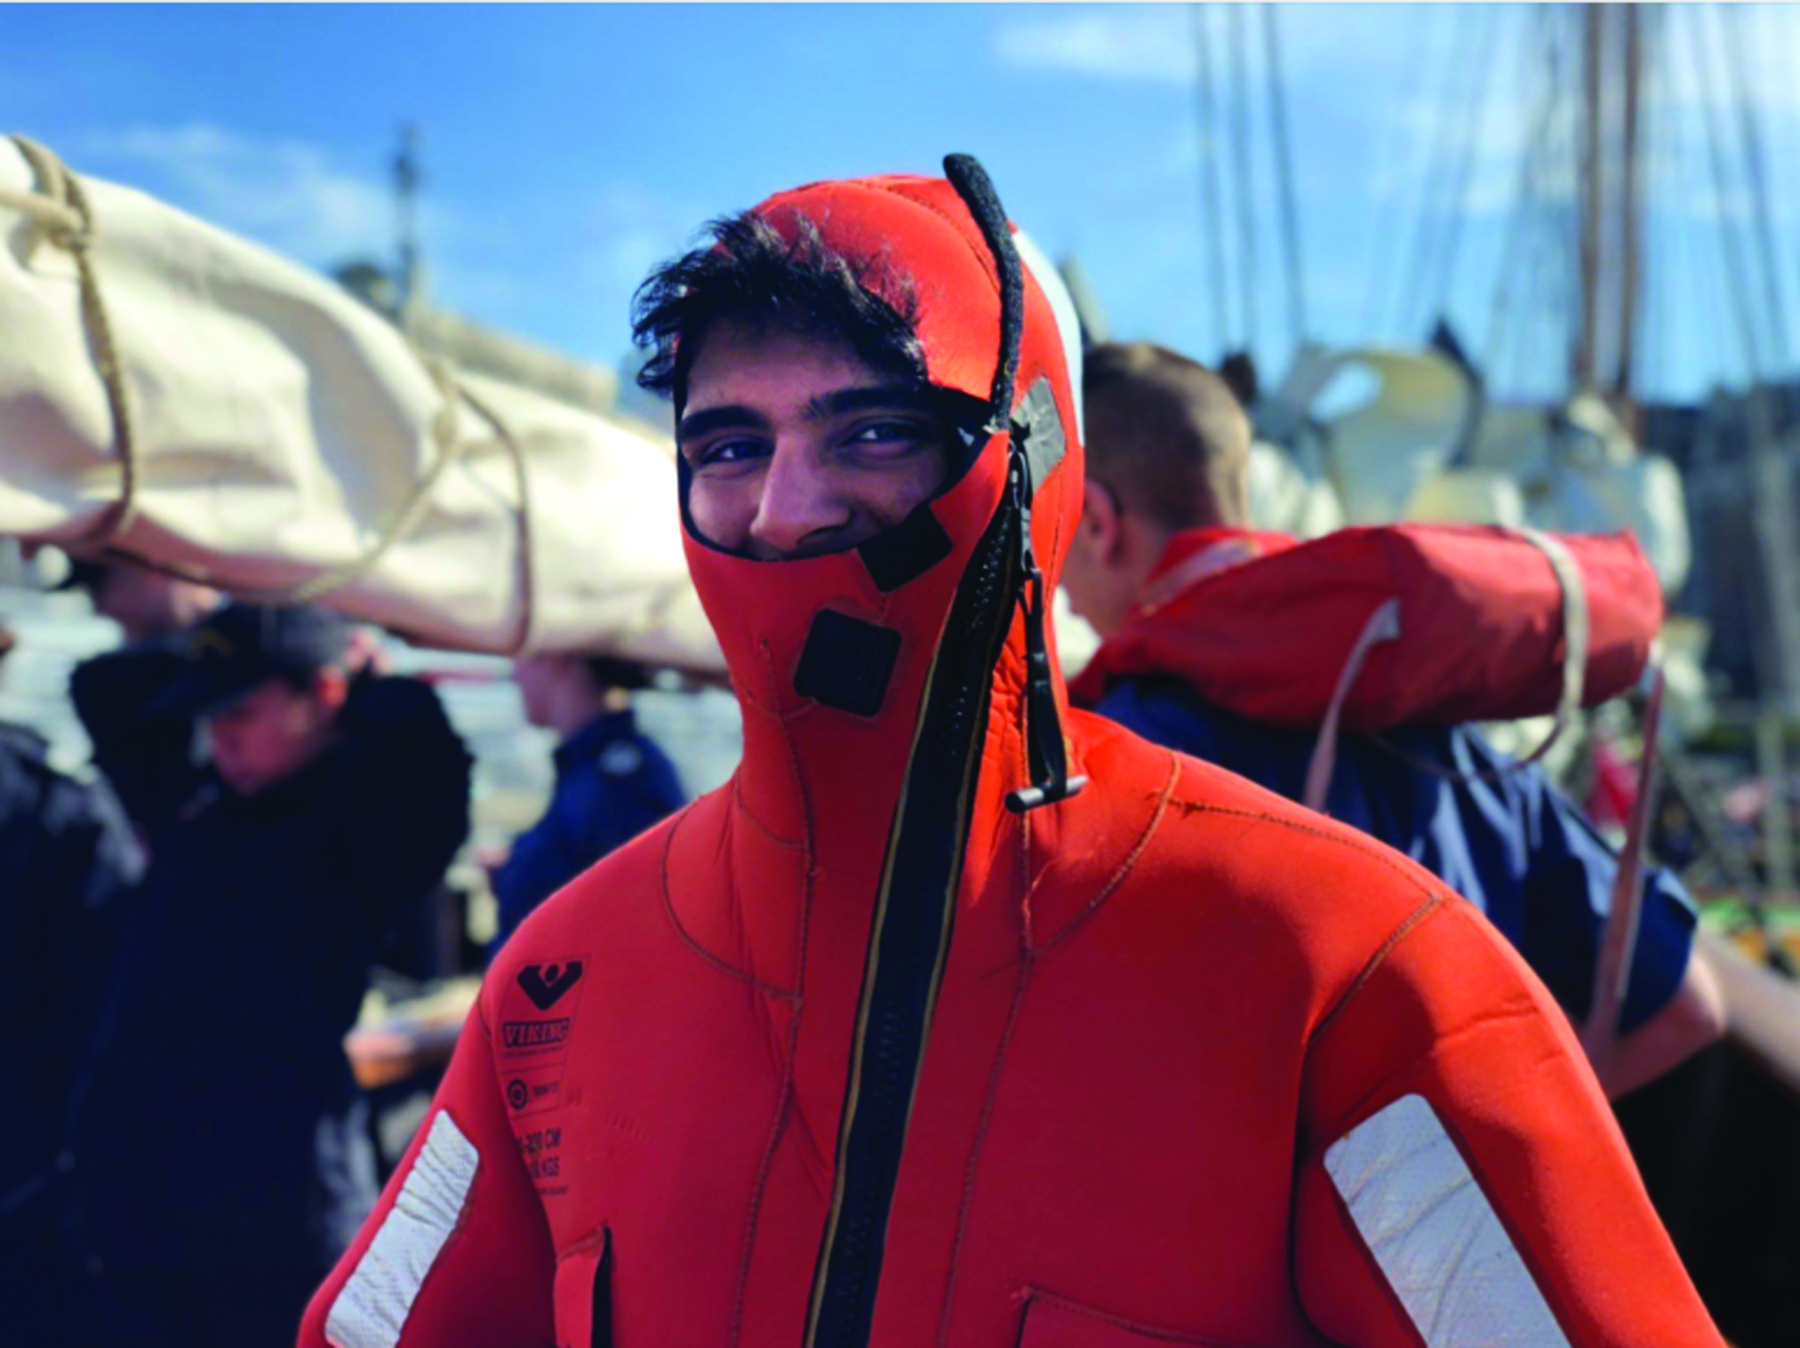 Cadet Pratik Menghani from Niagra Falls, Ontario tries on a wet suit and learns about survival at sea on Tall Ship Deployment 2018 off the coast of British Columbia. (Canadian Cadet Organizations)